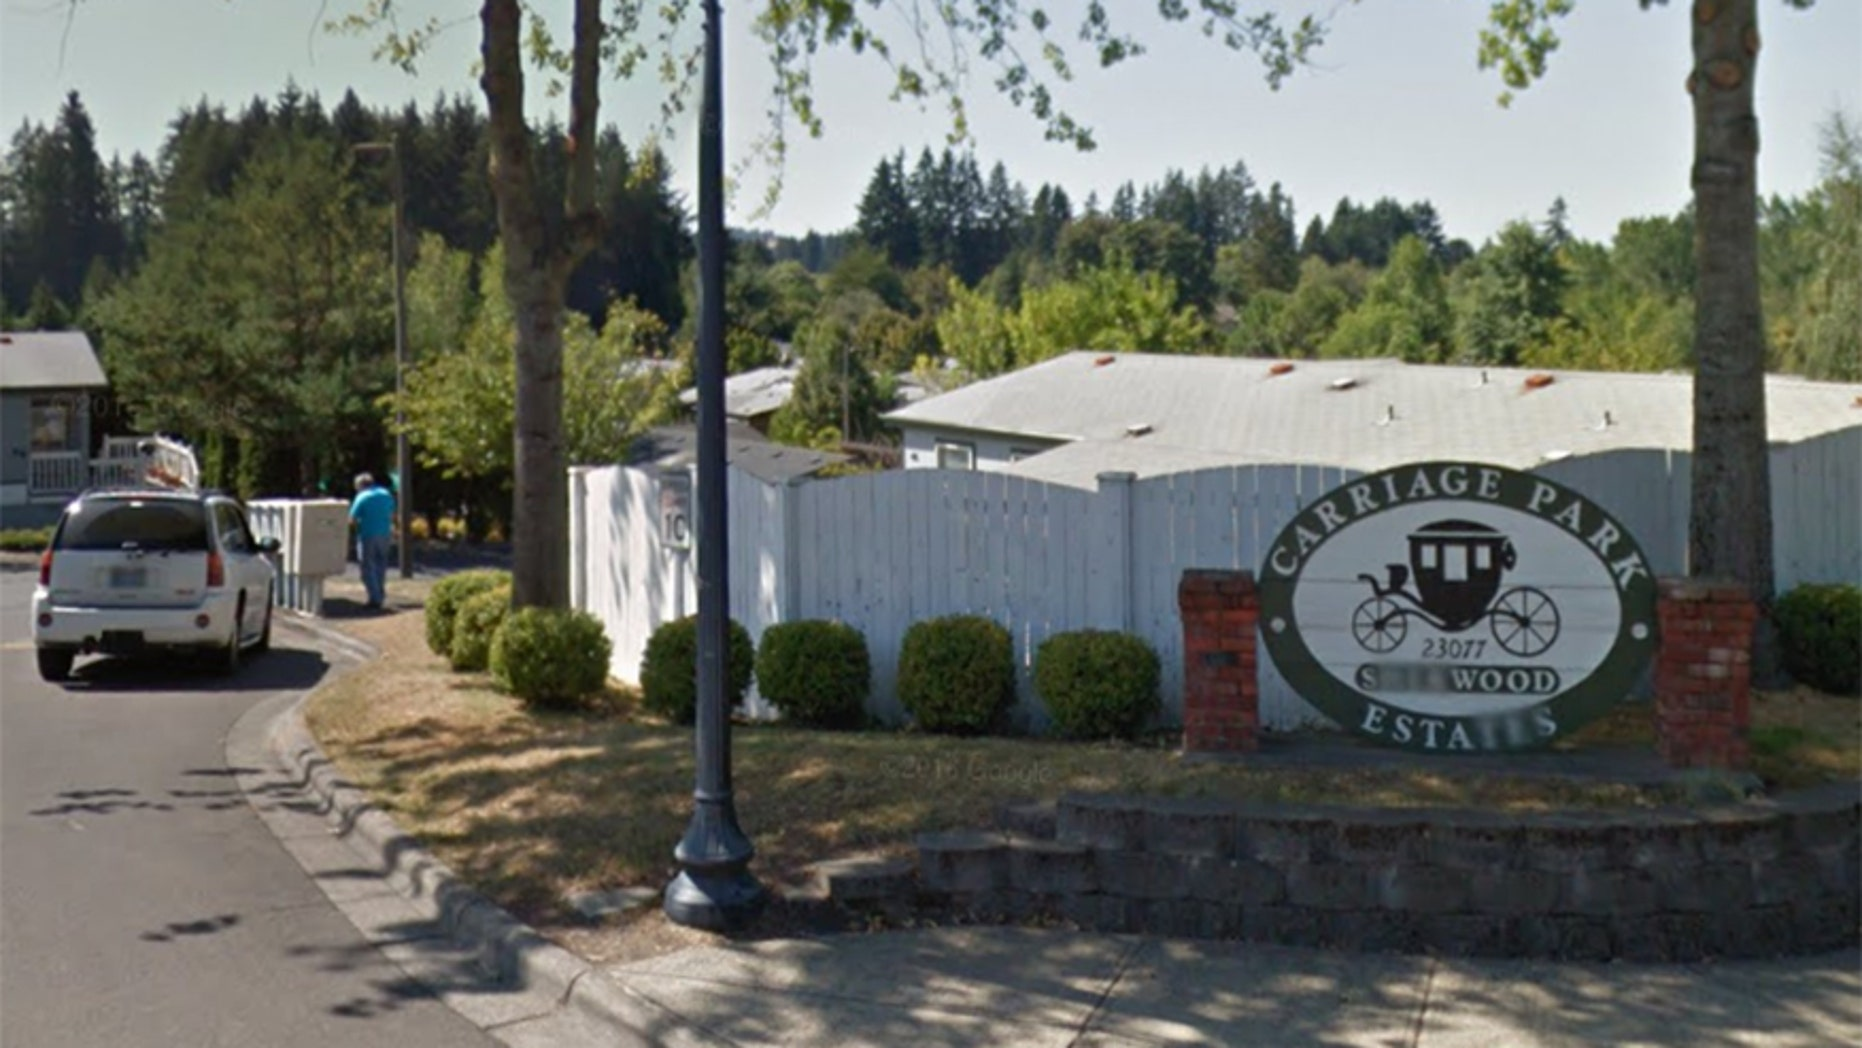 Oregon teen plays Russian roulette, kills himself on New Year's Day